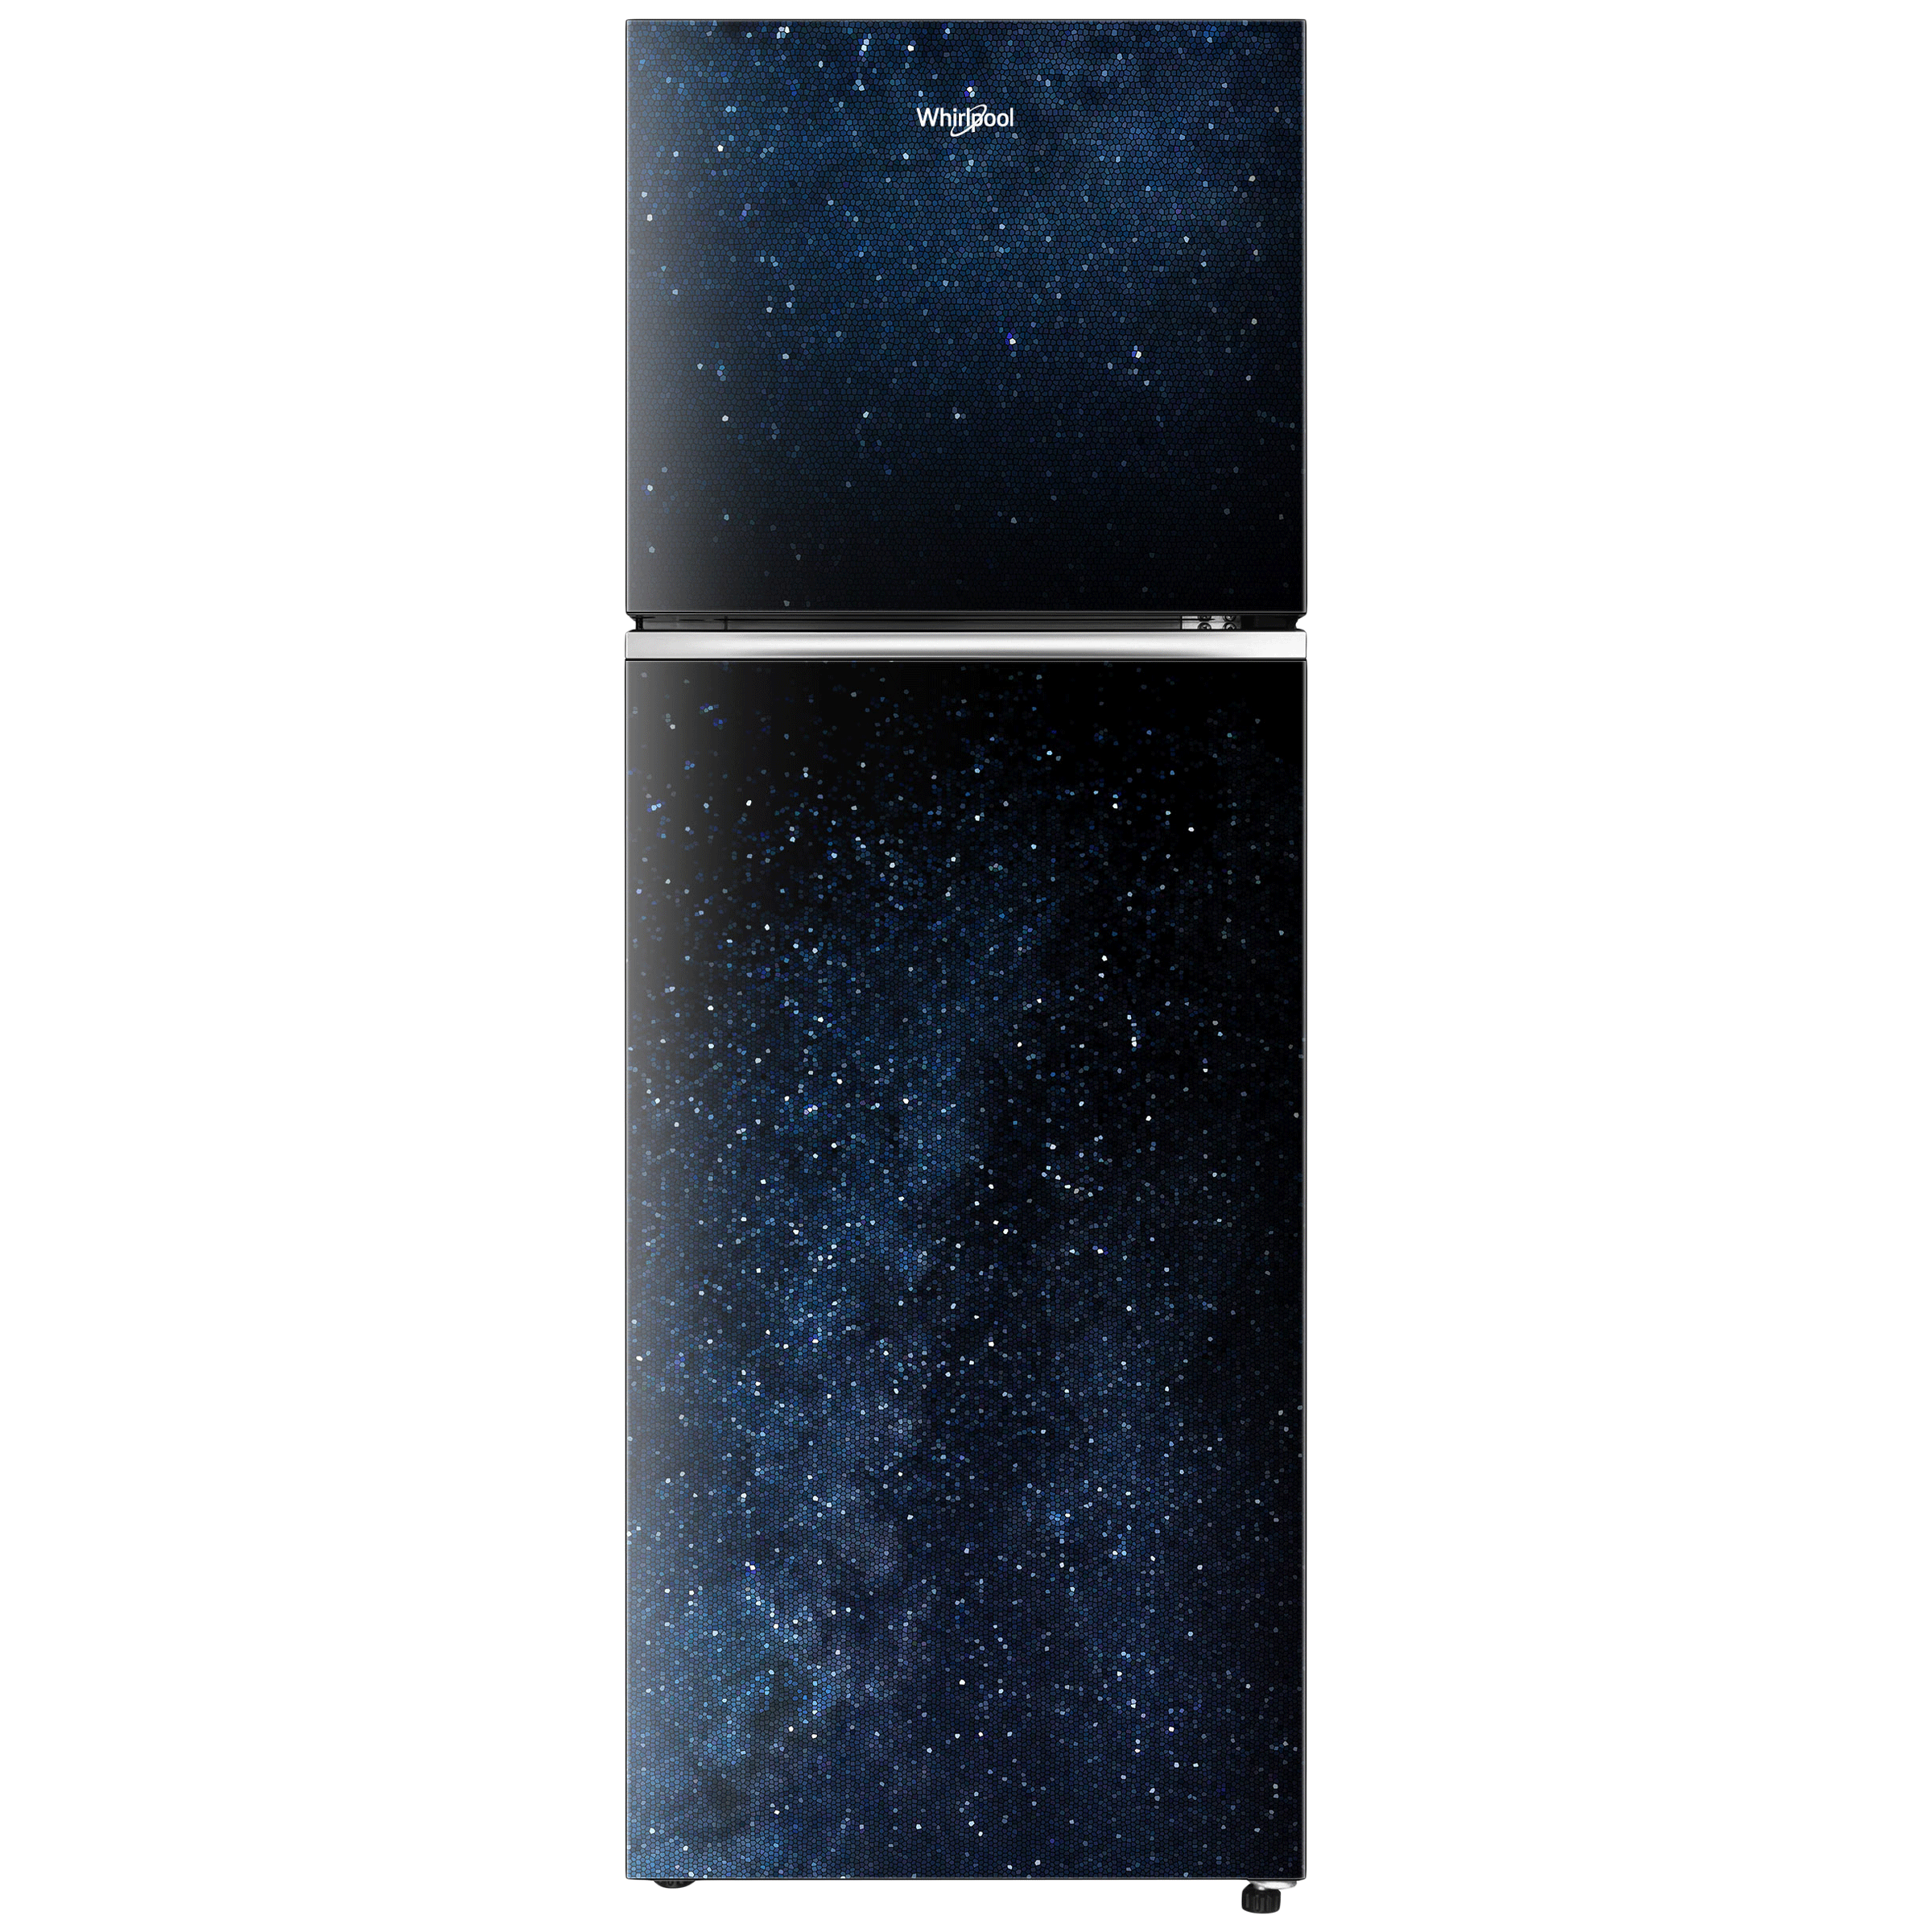 Whirlpool Neofresh 265 Litres 2 Star Frost Free Double Door Refrigerator (Stabilizer Free Operation, Pattern Glass)_1